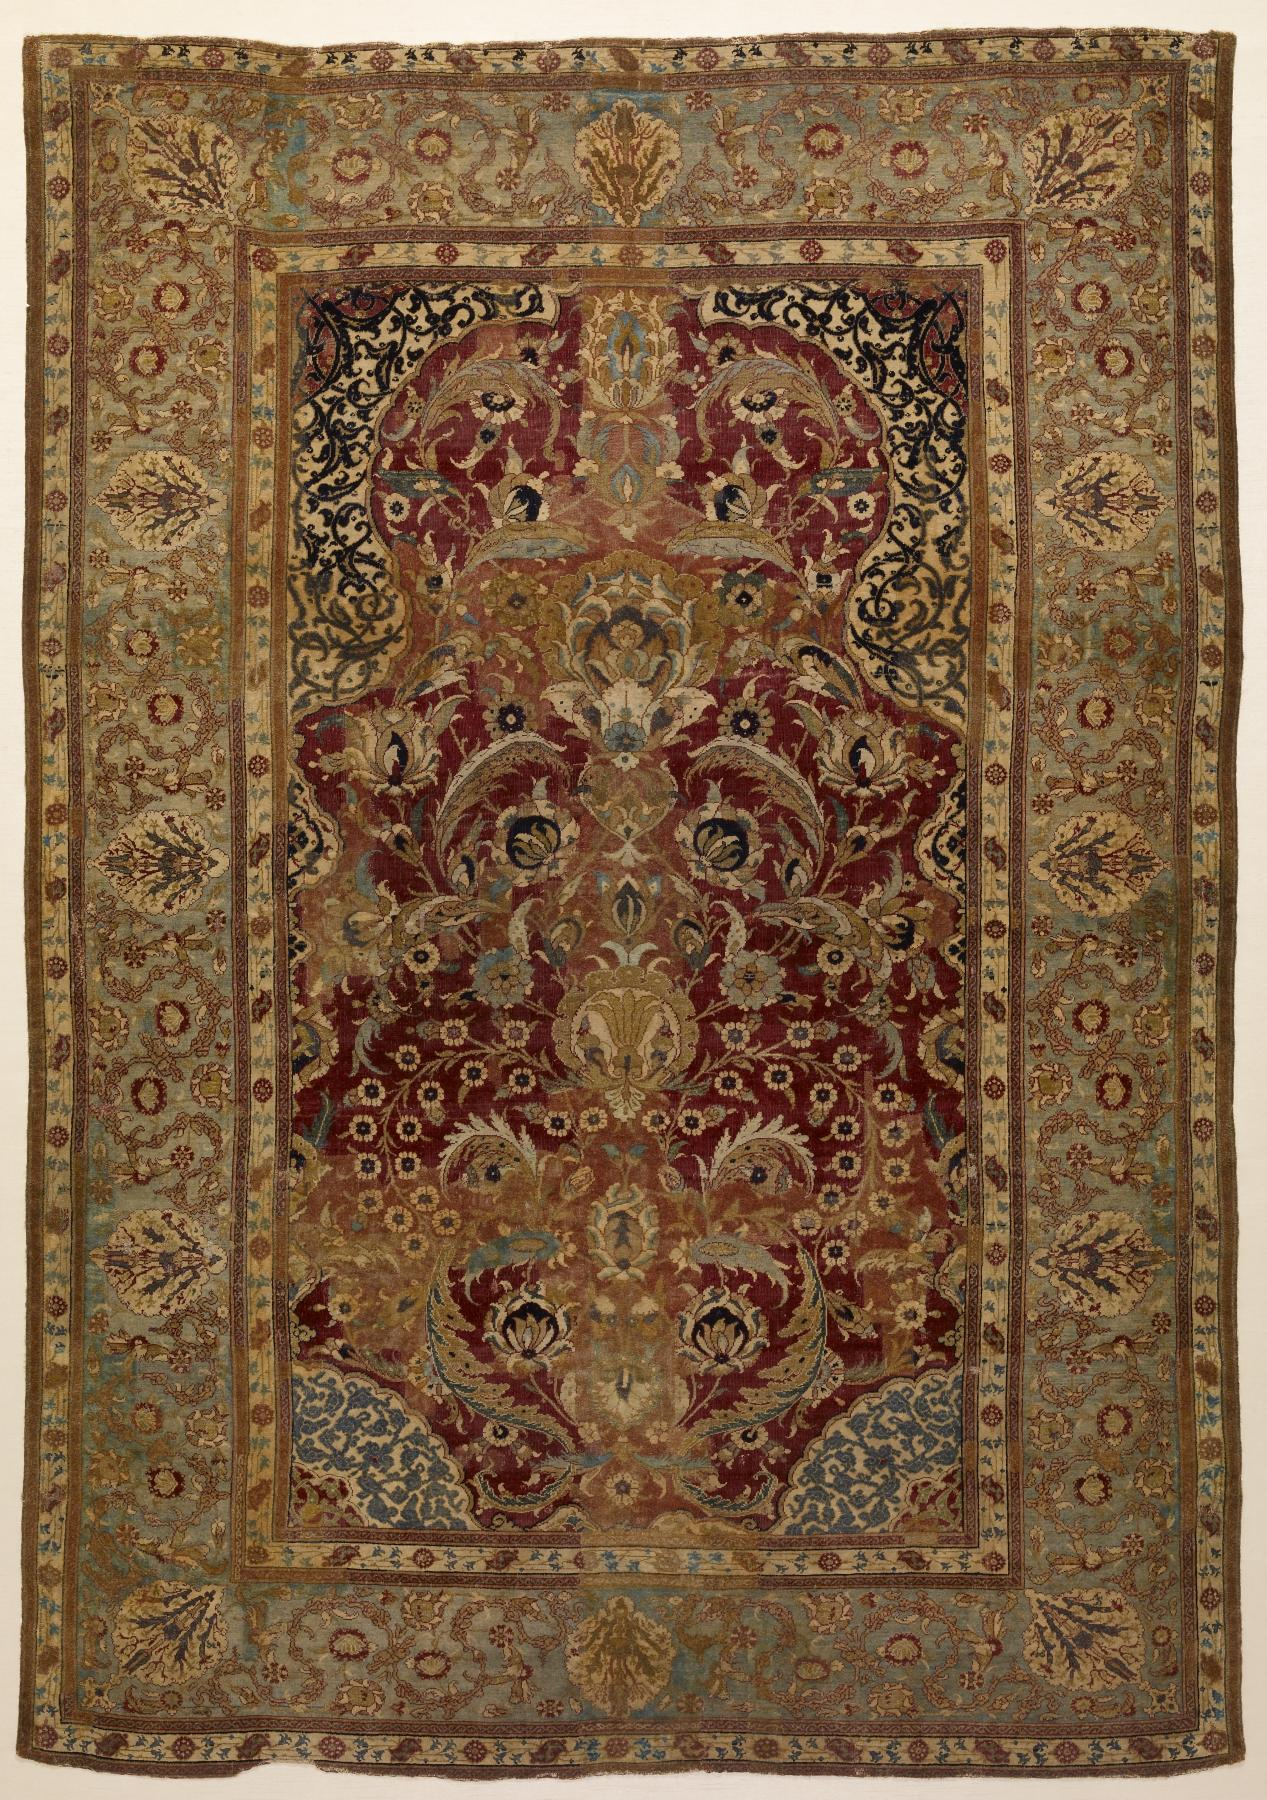 file turkish prayer rug with floral and ornamental designs walters